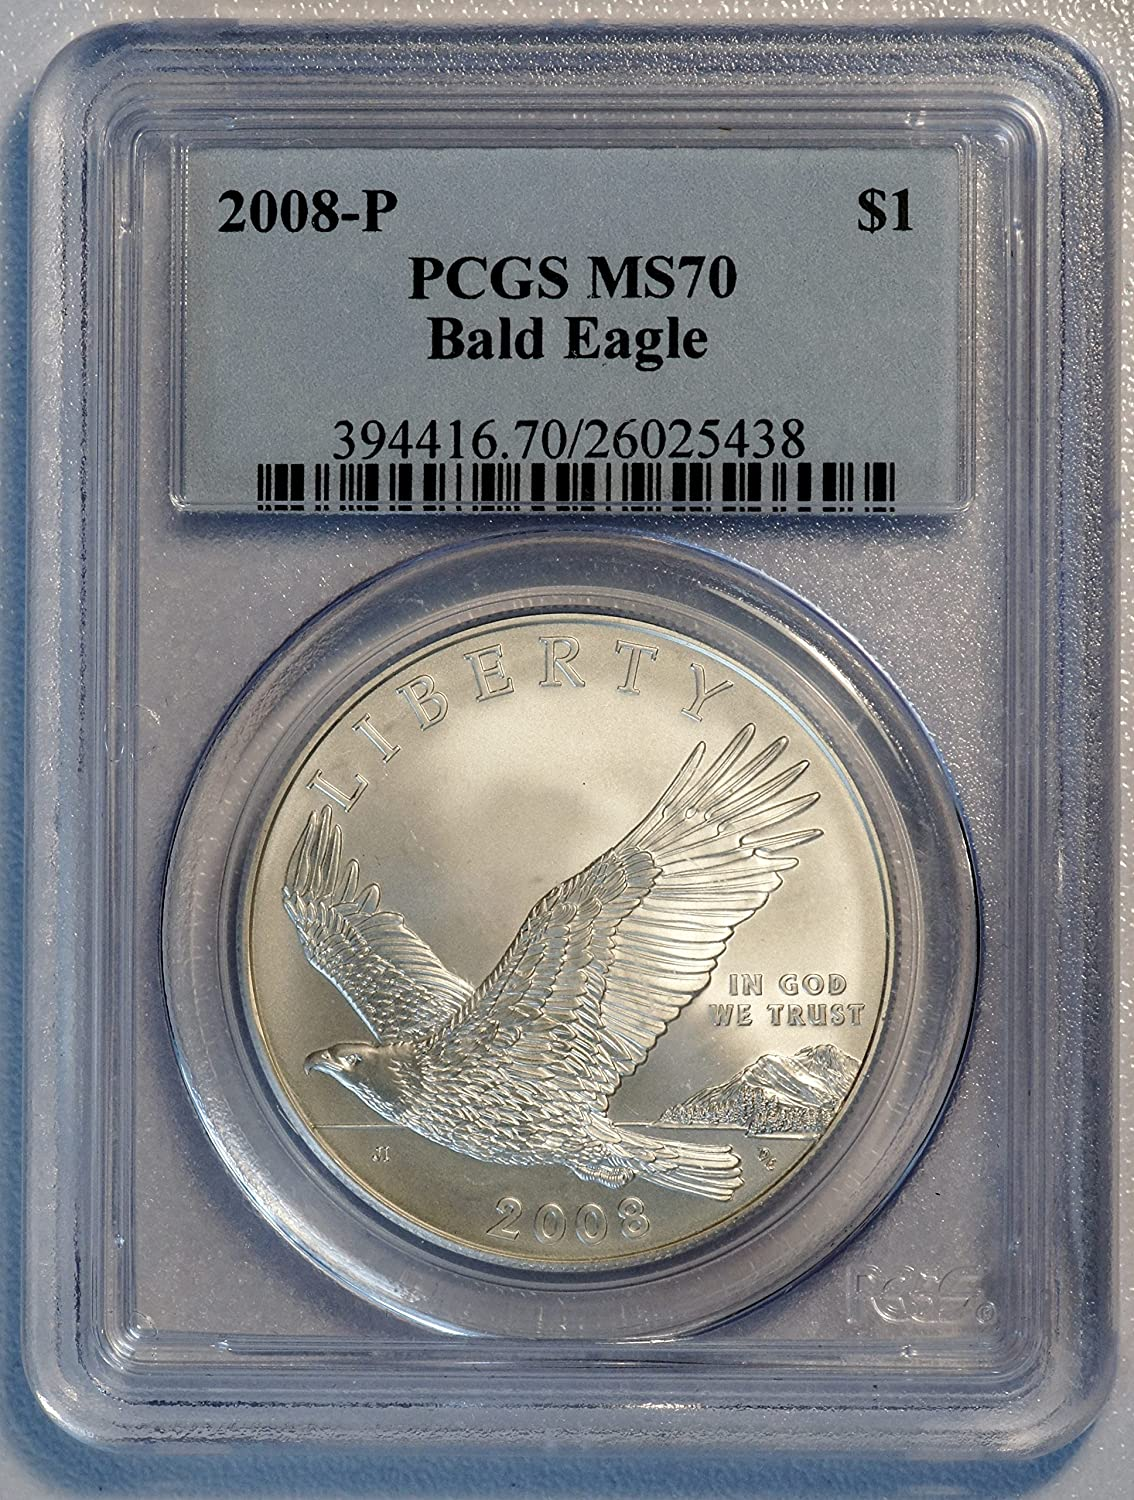 2008 P $1 Bald Eagle Recovery Commemorative Silver Dollar Coin Choice Proof